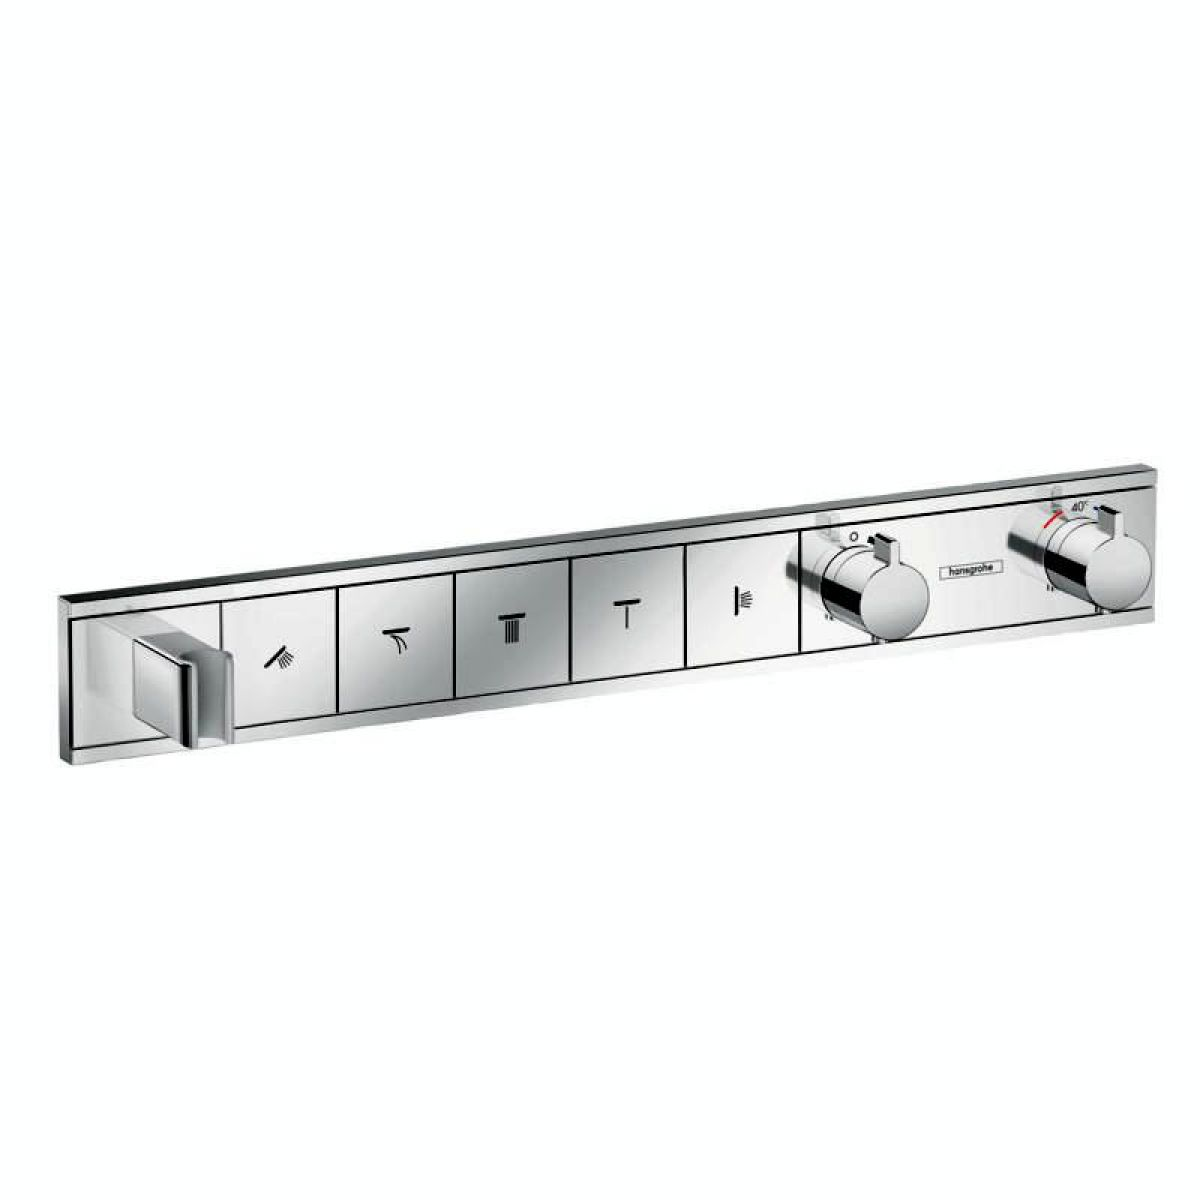 Hansgrohe RainSelect Concealed Valve For 5 Outlets